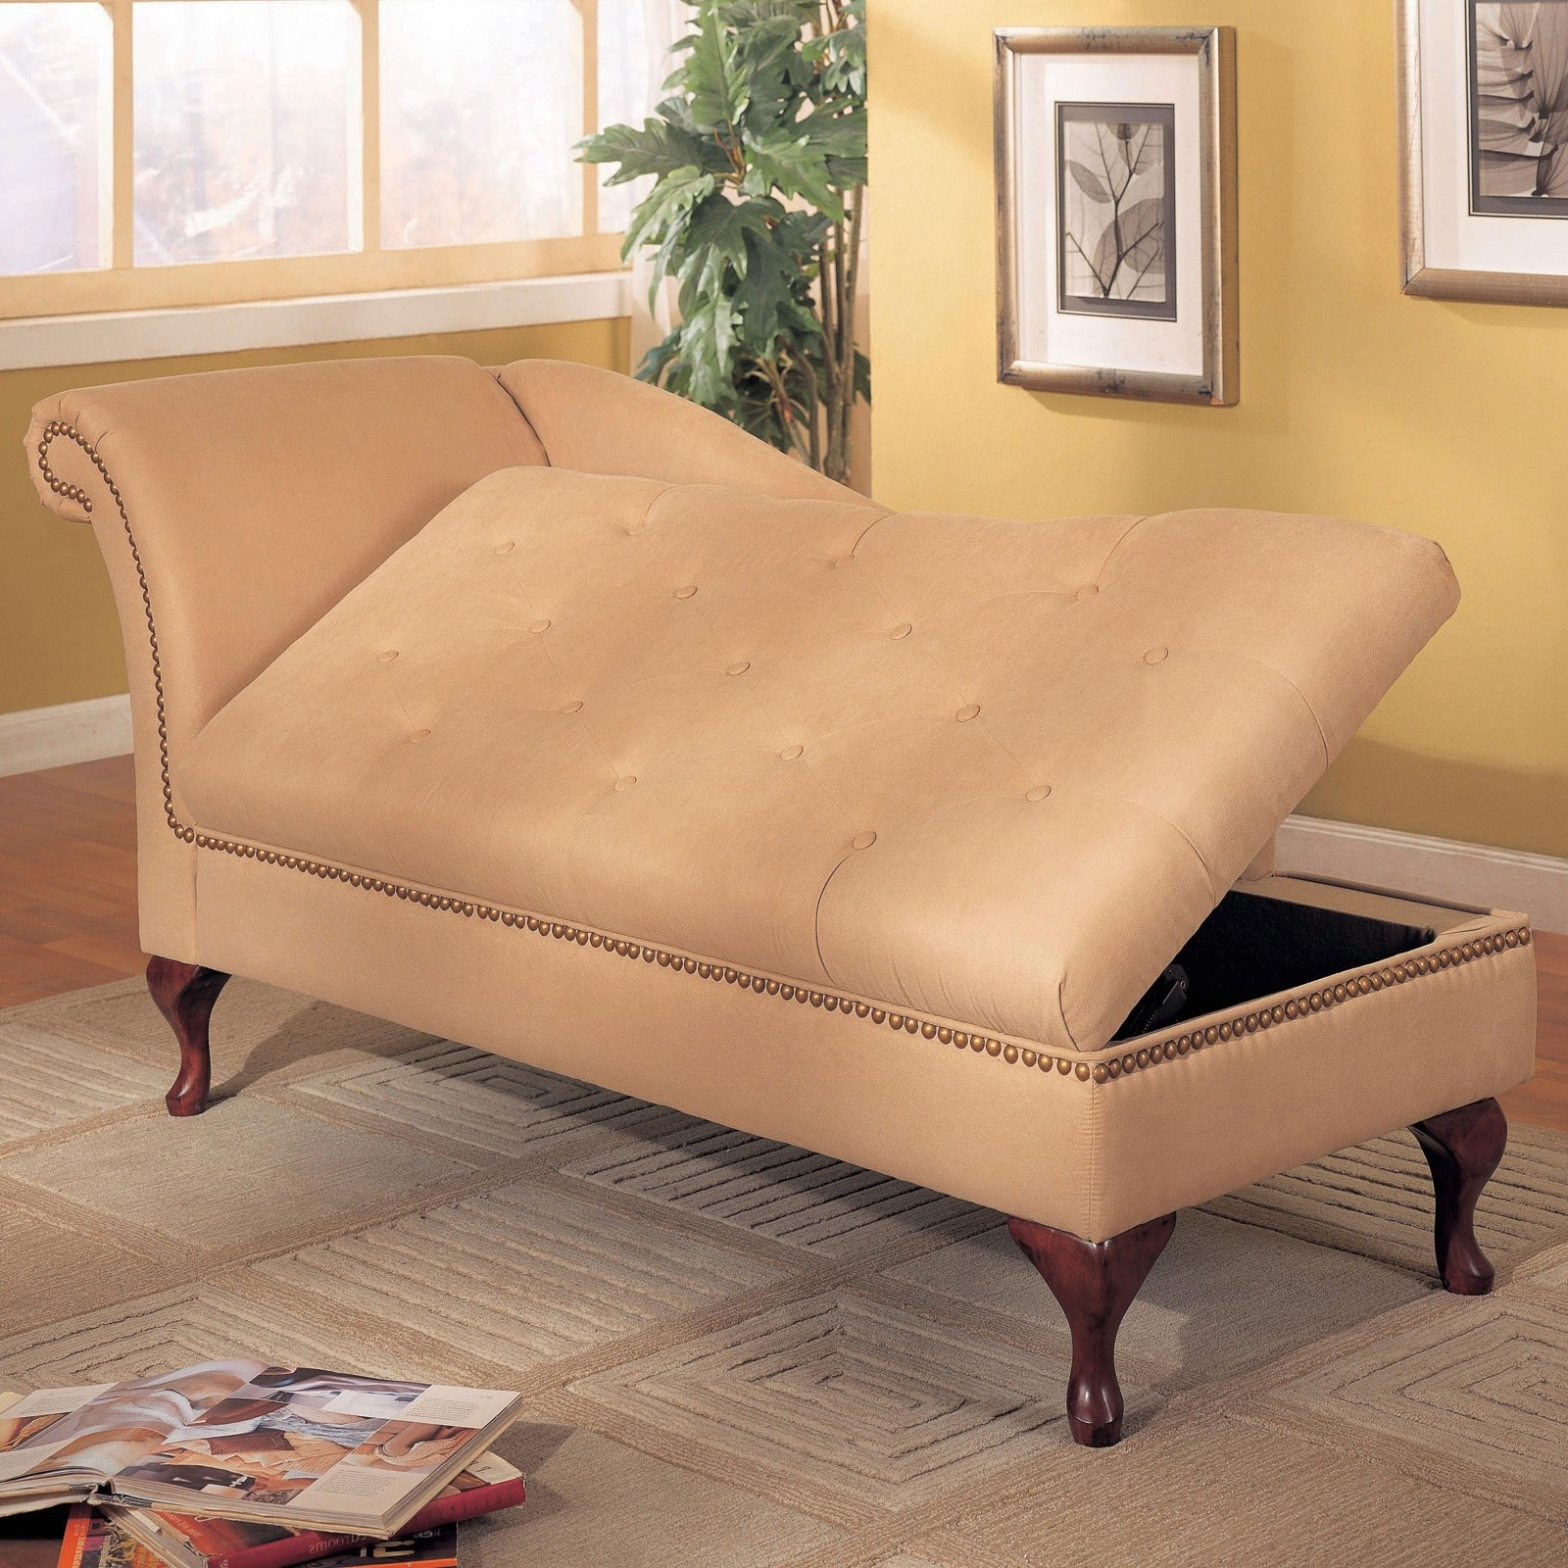 Most Recent Home Decor: Small Bedroom Chaise Lounge Chairs • Lounge Chairs With Narrow Chaise Lounge Chairs (View 7 of 15)